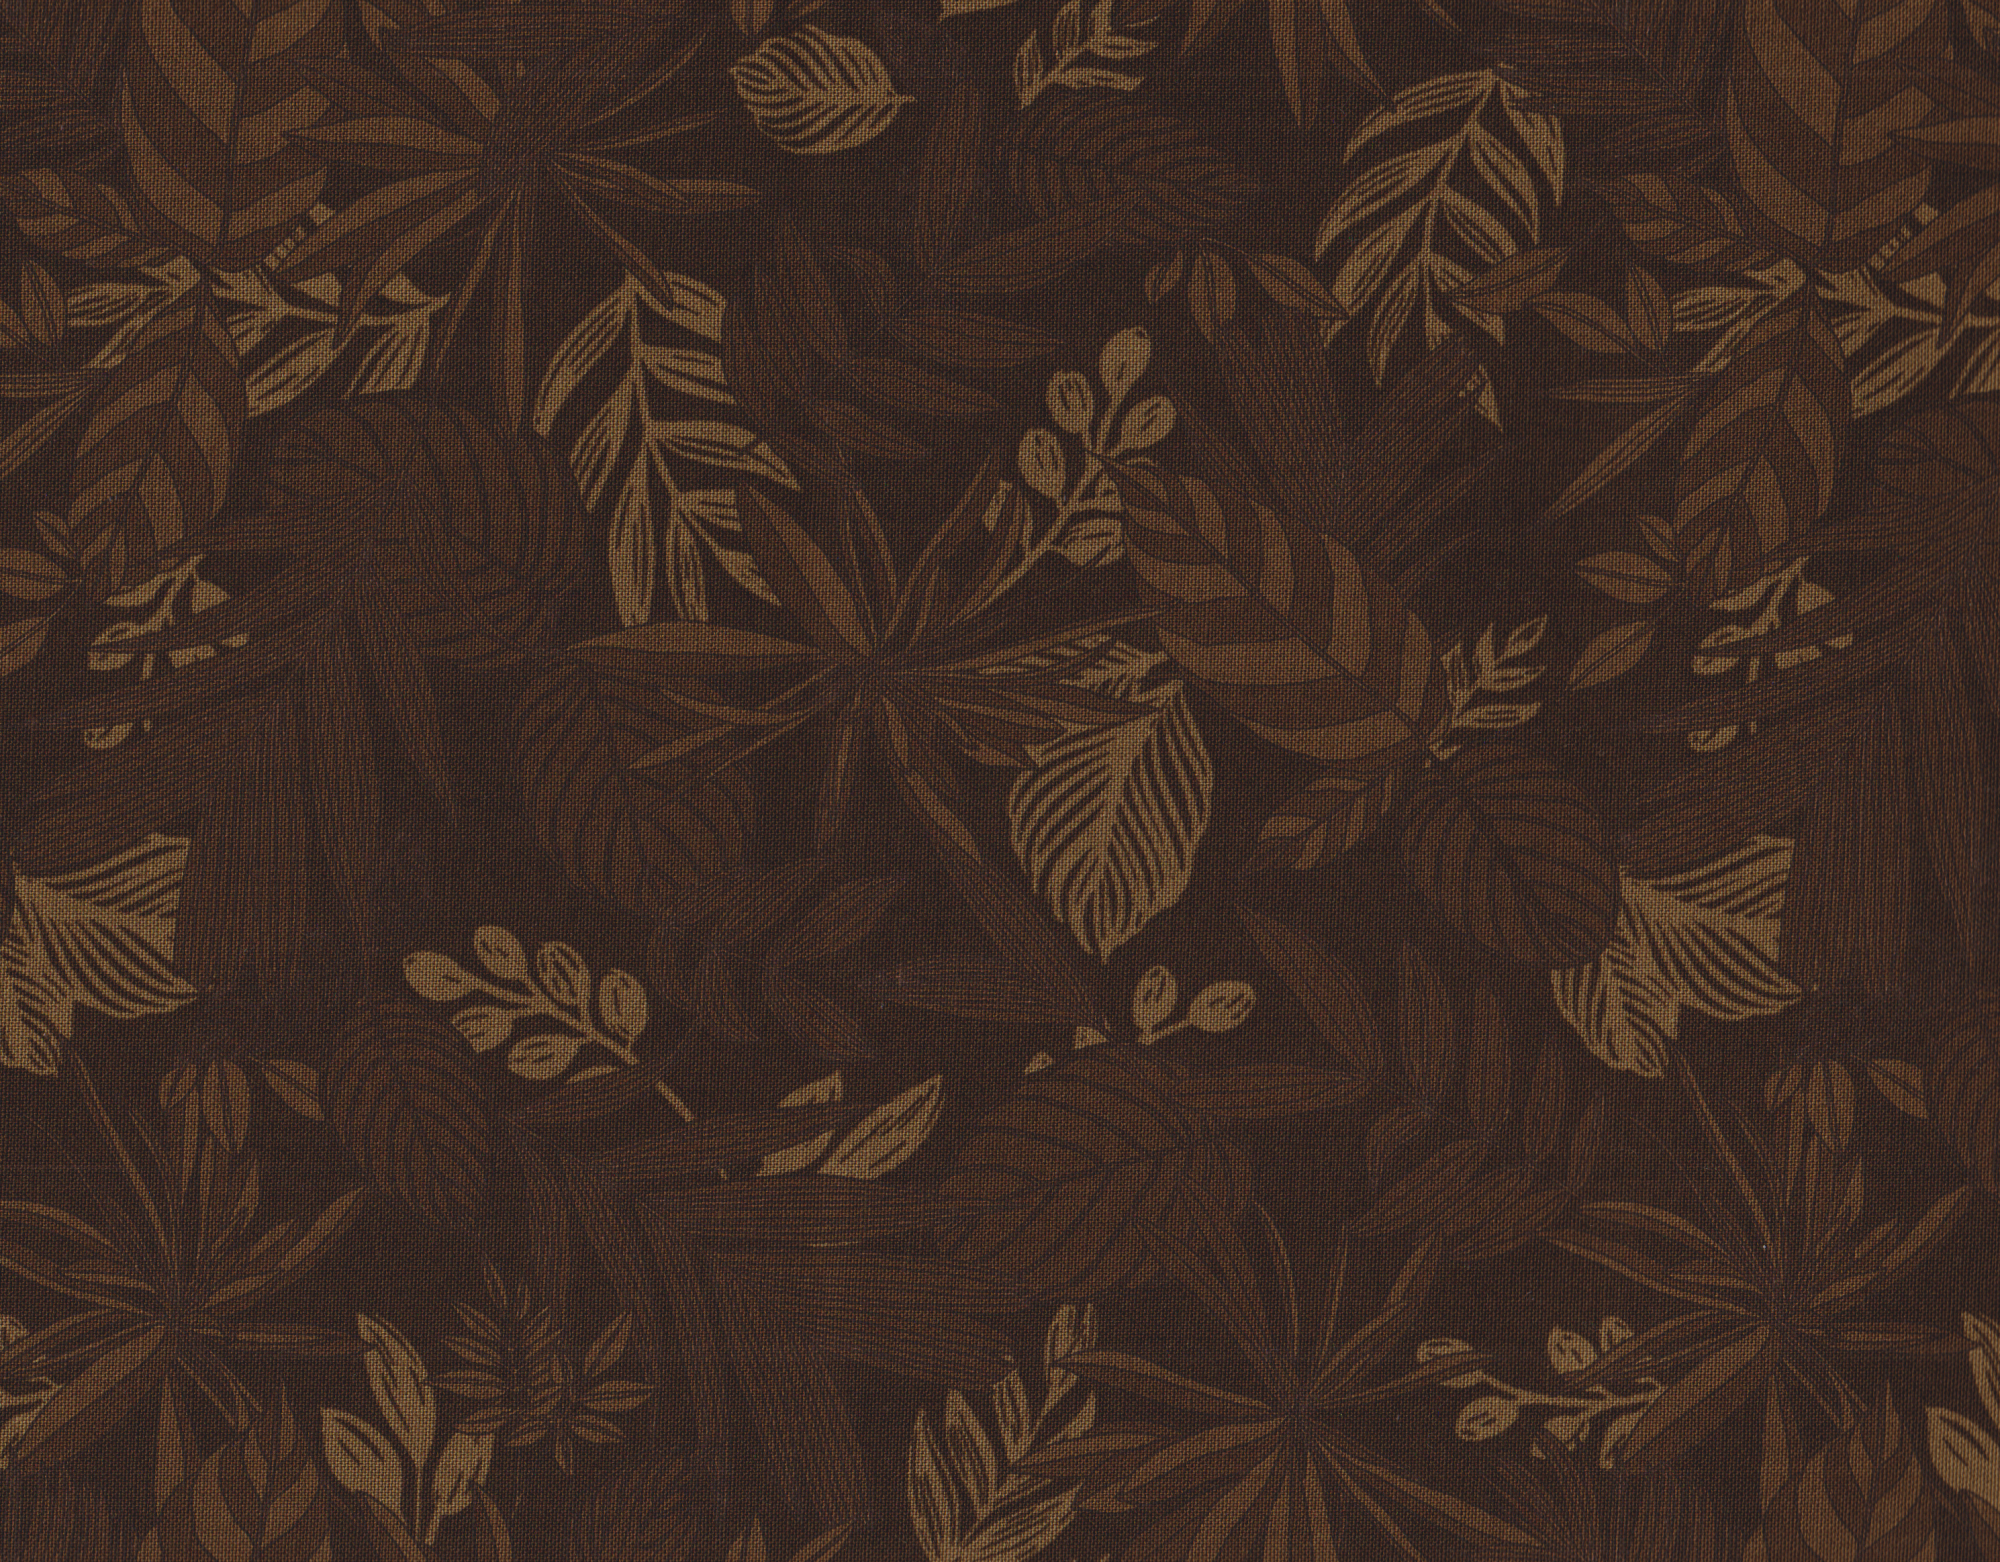 PROMO* Boundless - Blenders Collage Prints #8 Brown Leaves